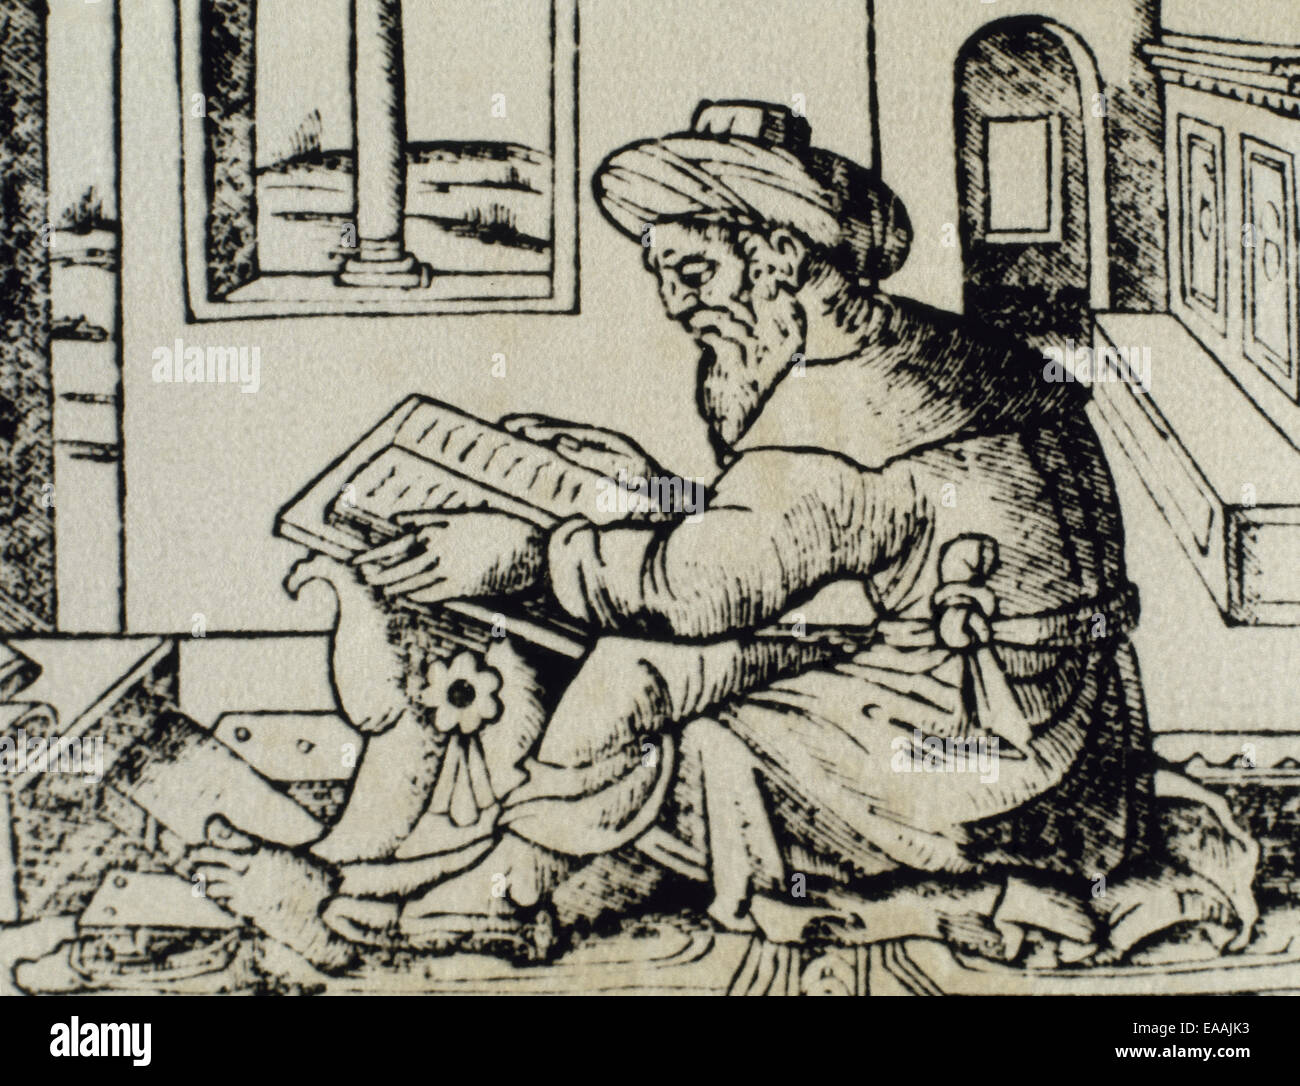 Averroes (1126-1198). Ibn Rushd. Medieval Andalusian Muslim polymath. Portrait. Averroes in his studio. Engraving. Stock Photo